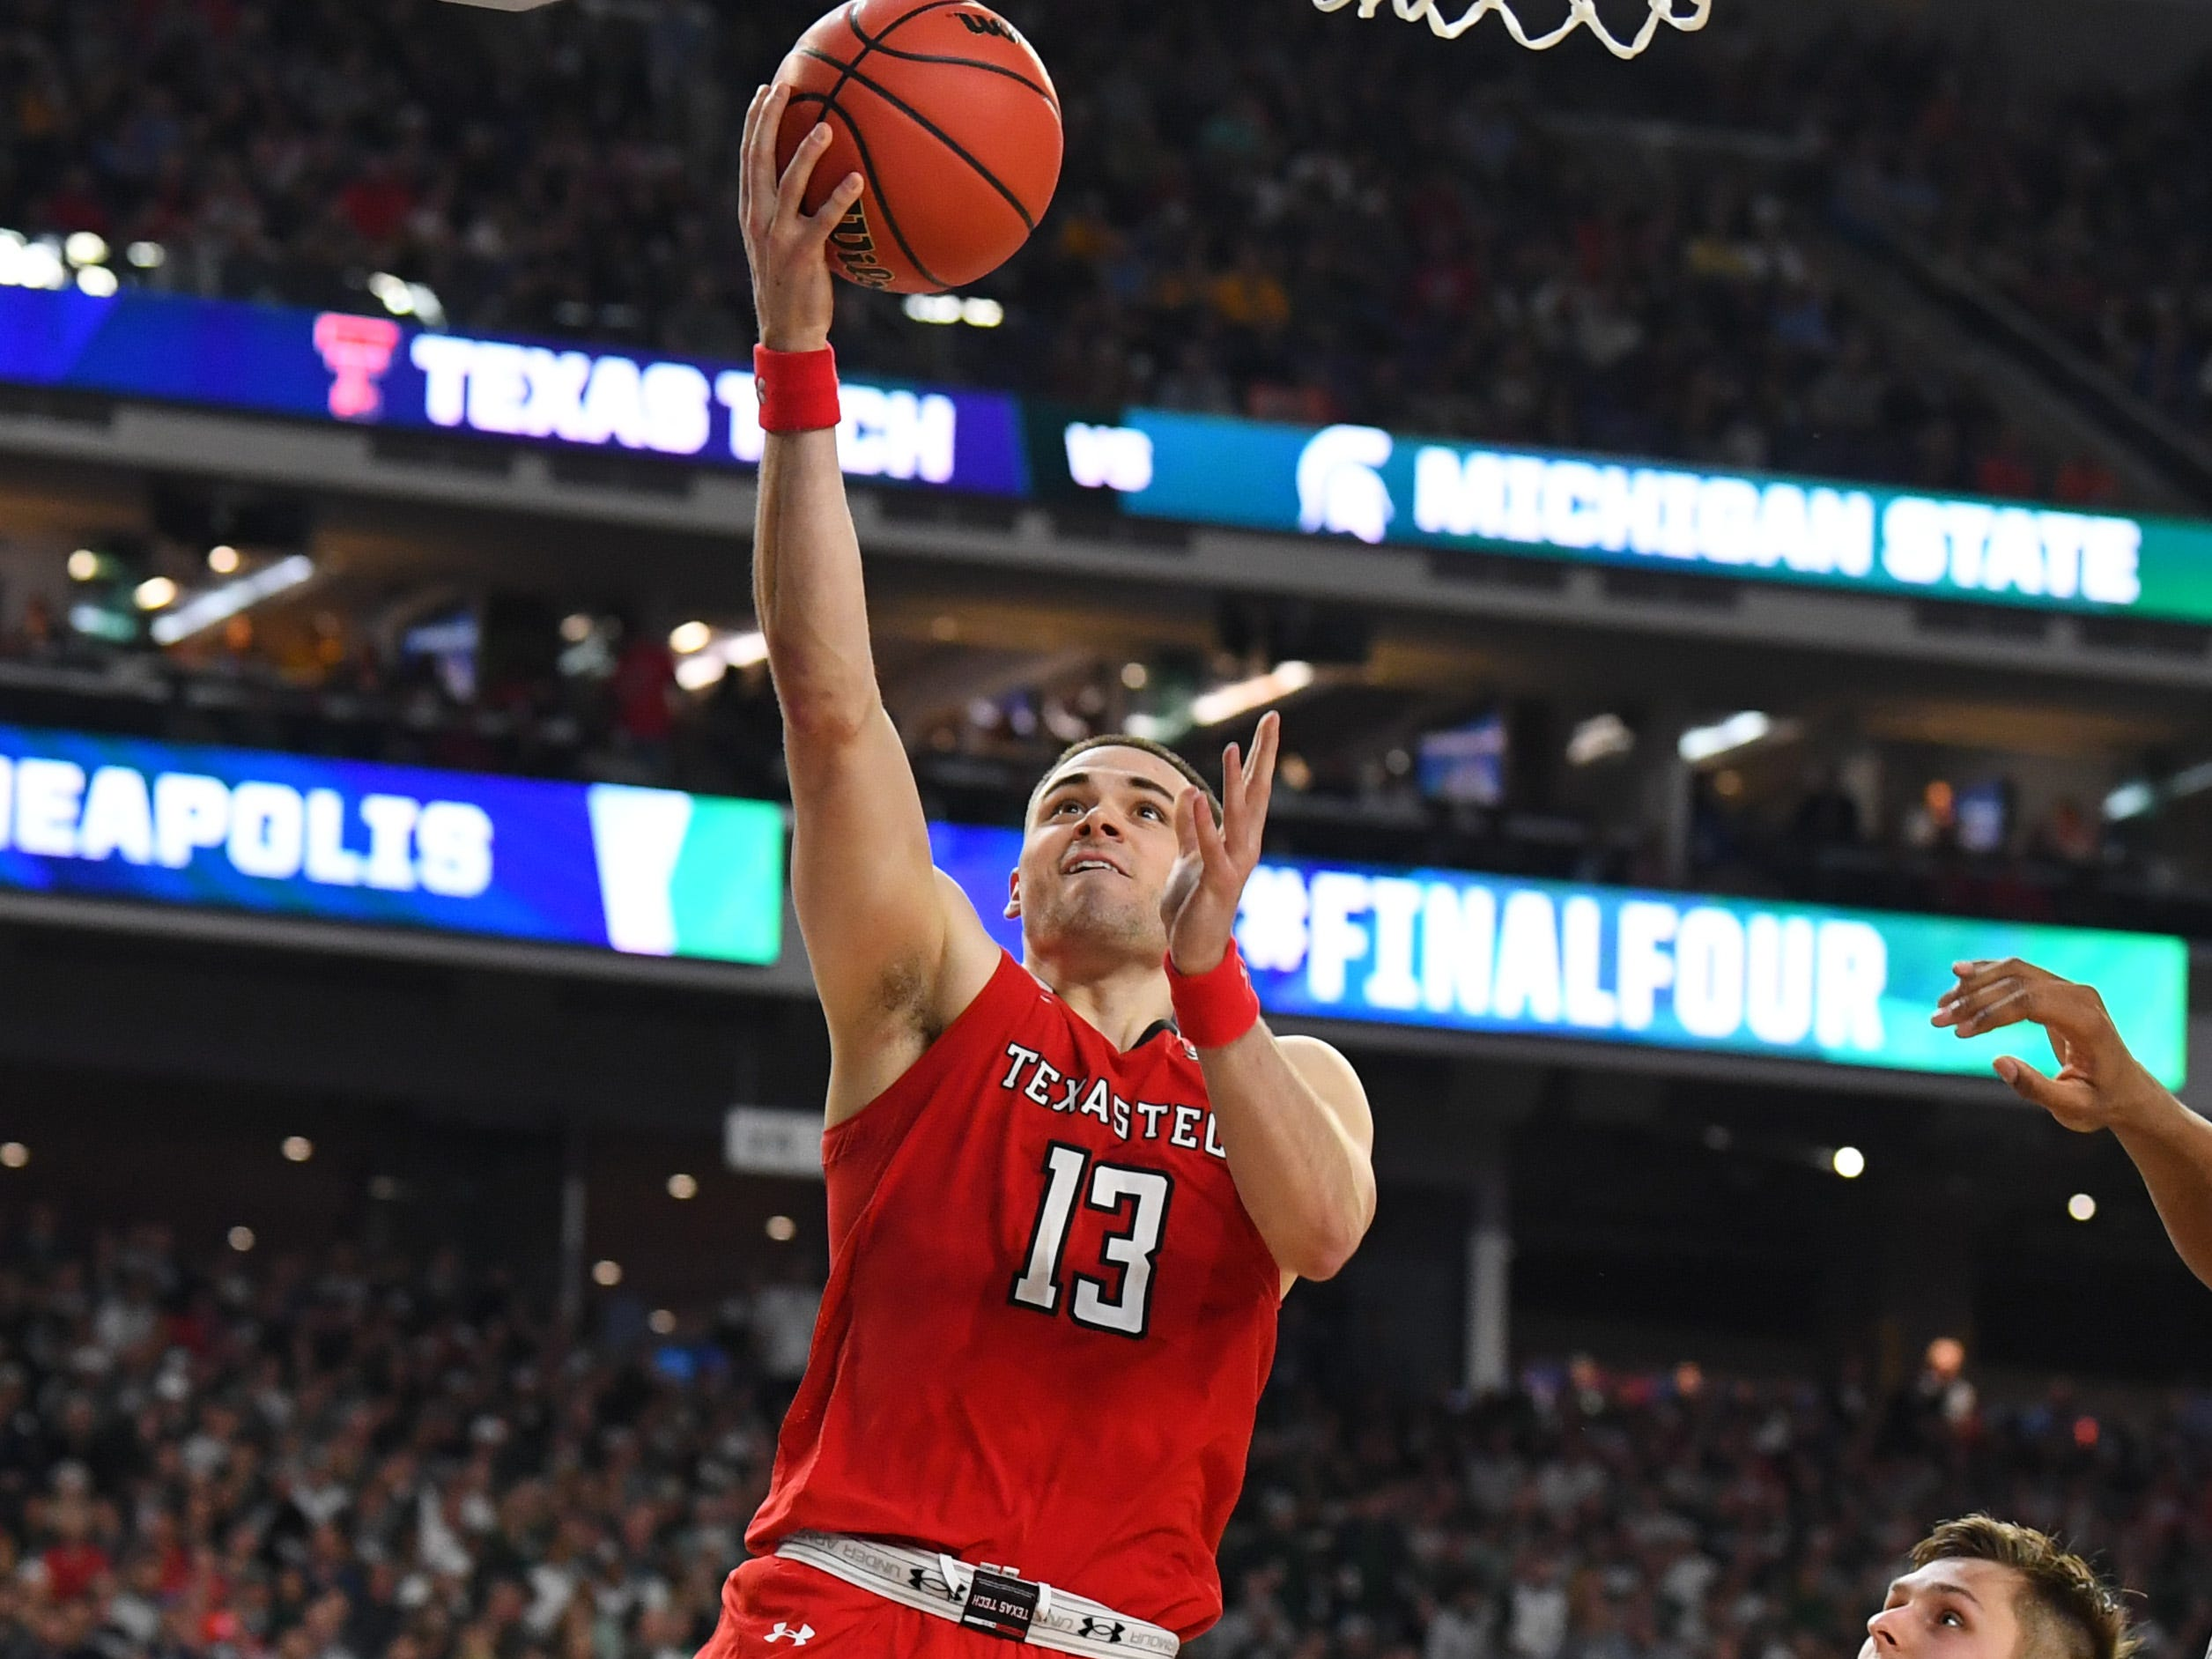 Apr 6, 2019; Minneapolis, MN, USA; Texas Tech Red Raiders guard Matt Mooney (13) lays the ball up past Michigan State Spartans guard Matt McQuaid (20) in the semifinals of the 2019 men's Final Four at US Bank Stadium. Mandatory Credit: Robert Deutsch-USA TODAY Sports